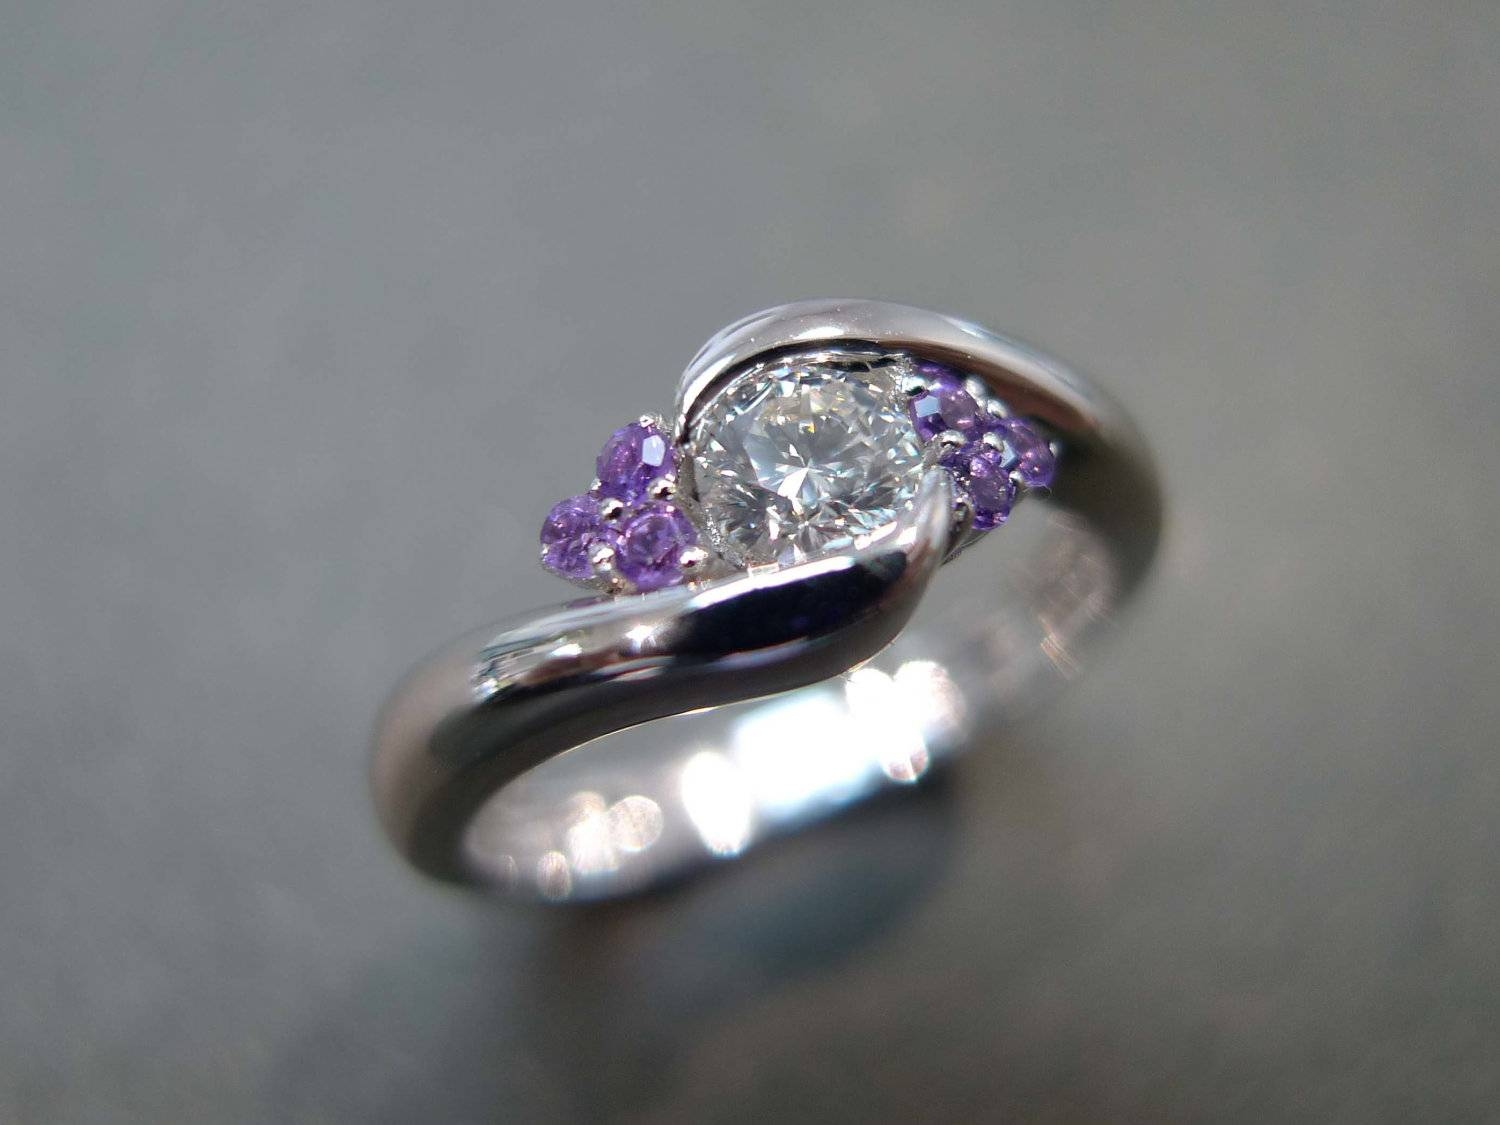 Diamonds Wedding Ring With Amethyst Amethyst Ring Amethyst Pertaining To Wedding Rings With Amethyst (Gallery 1 of 15)